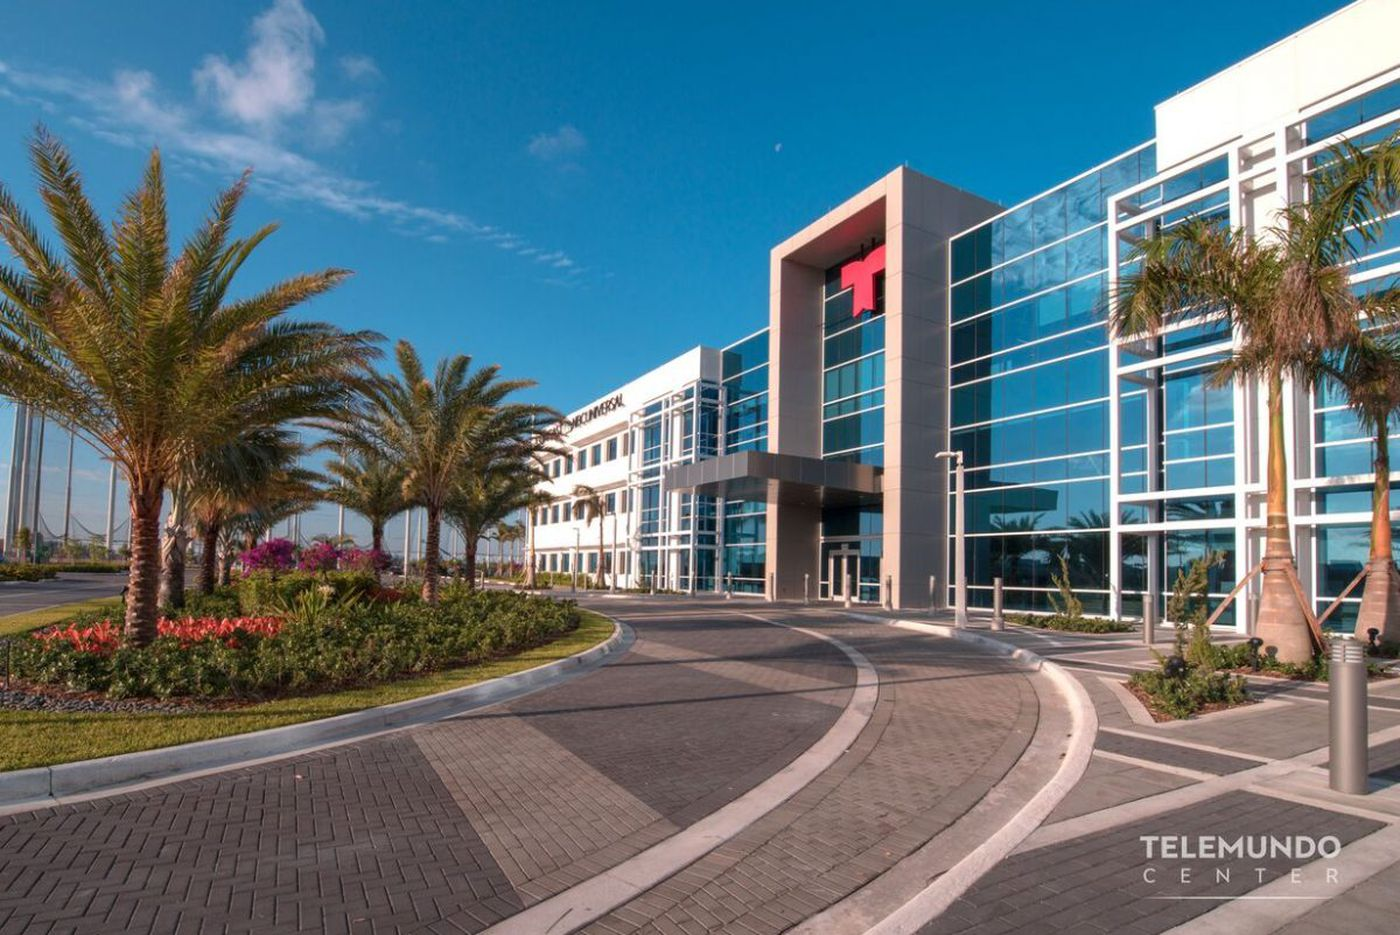 Comcast's Telemundo, once an also-ran in Spanish-language content, opens $250M HQ